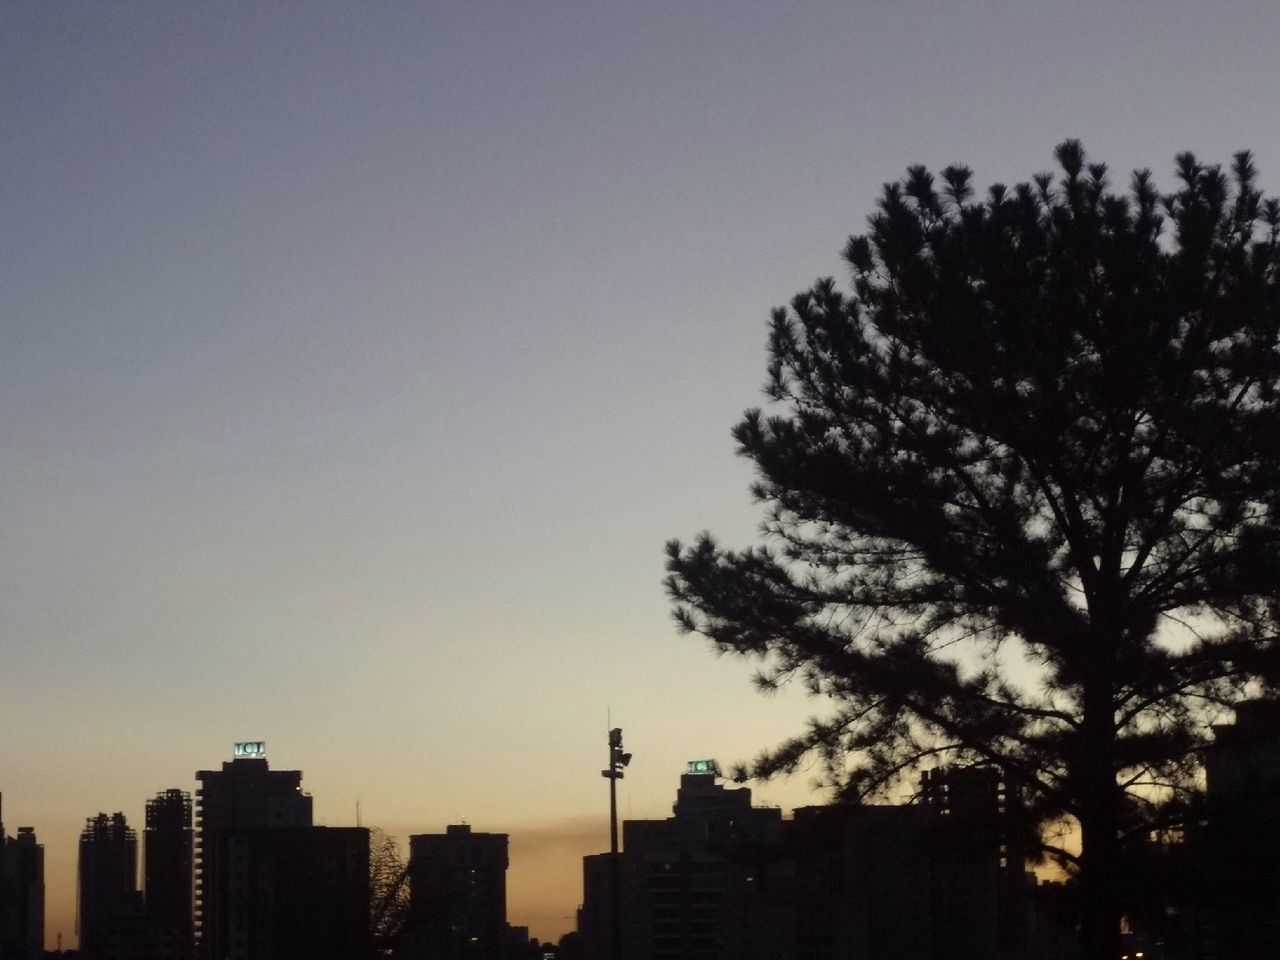 city, urban, architecture, skyscraper, sunset, cityscape, growth, modern, no people, place, tree, building exterior, clear sky, sky, high, outdoors